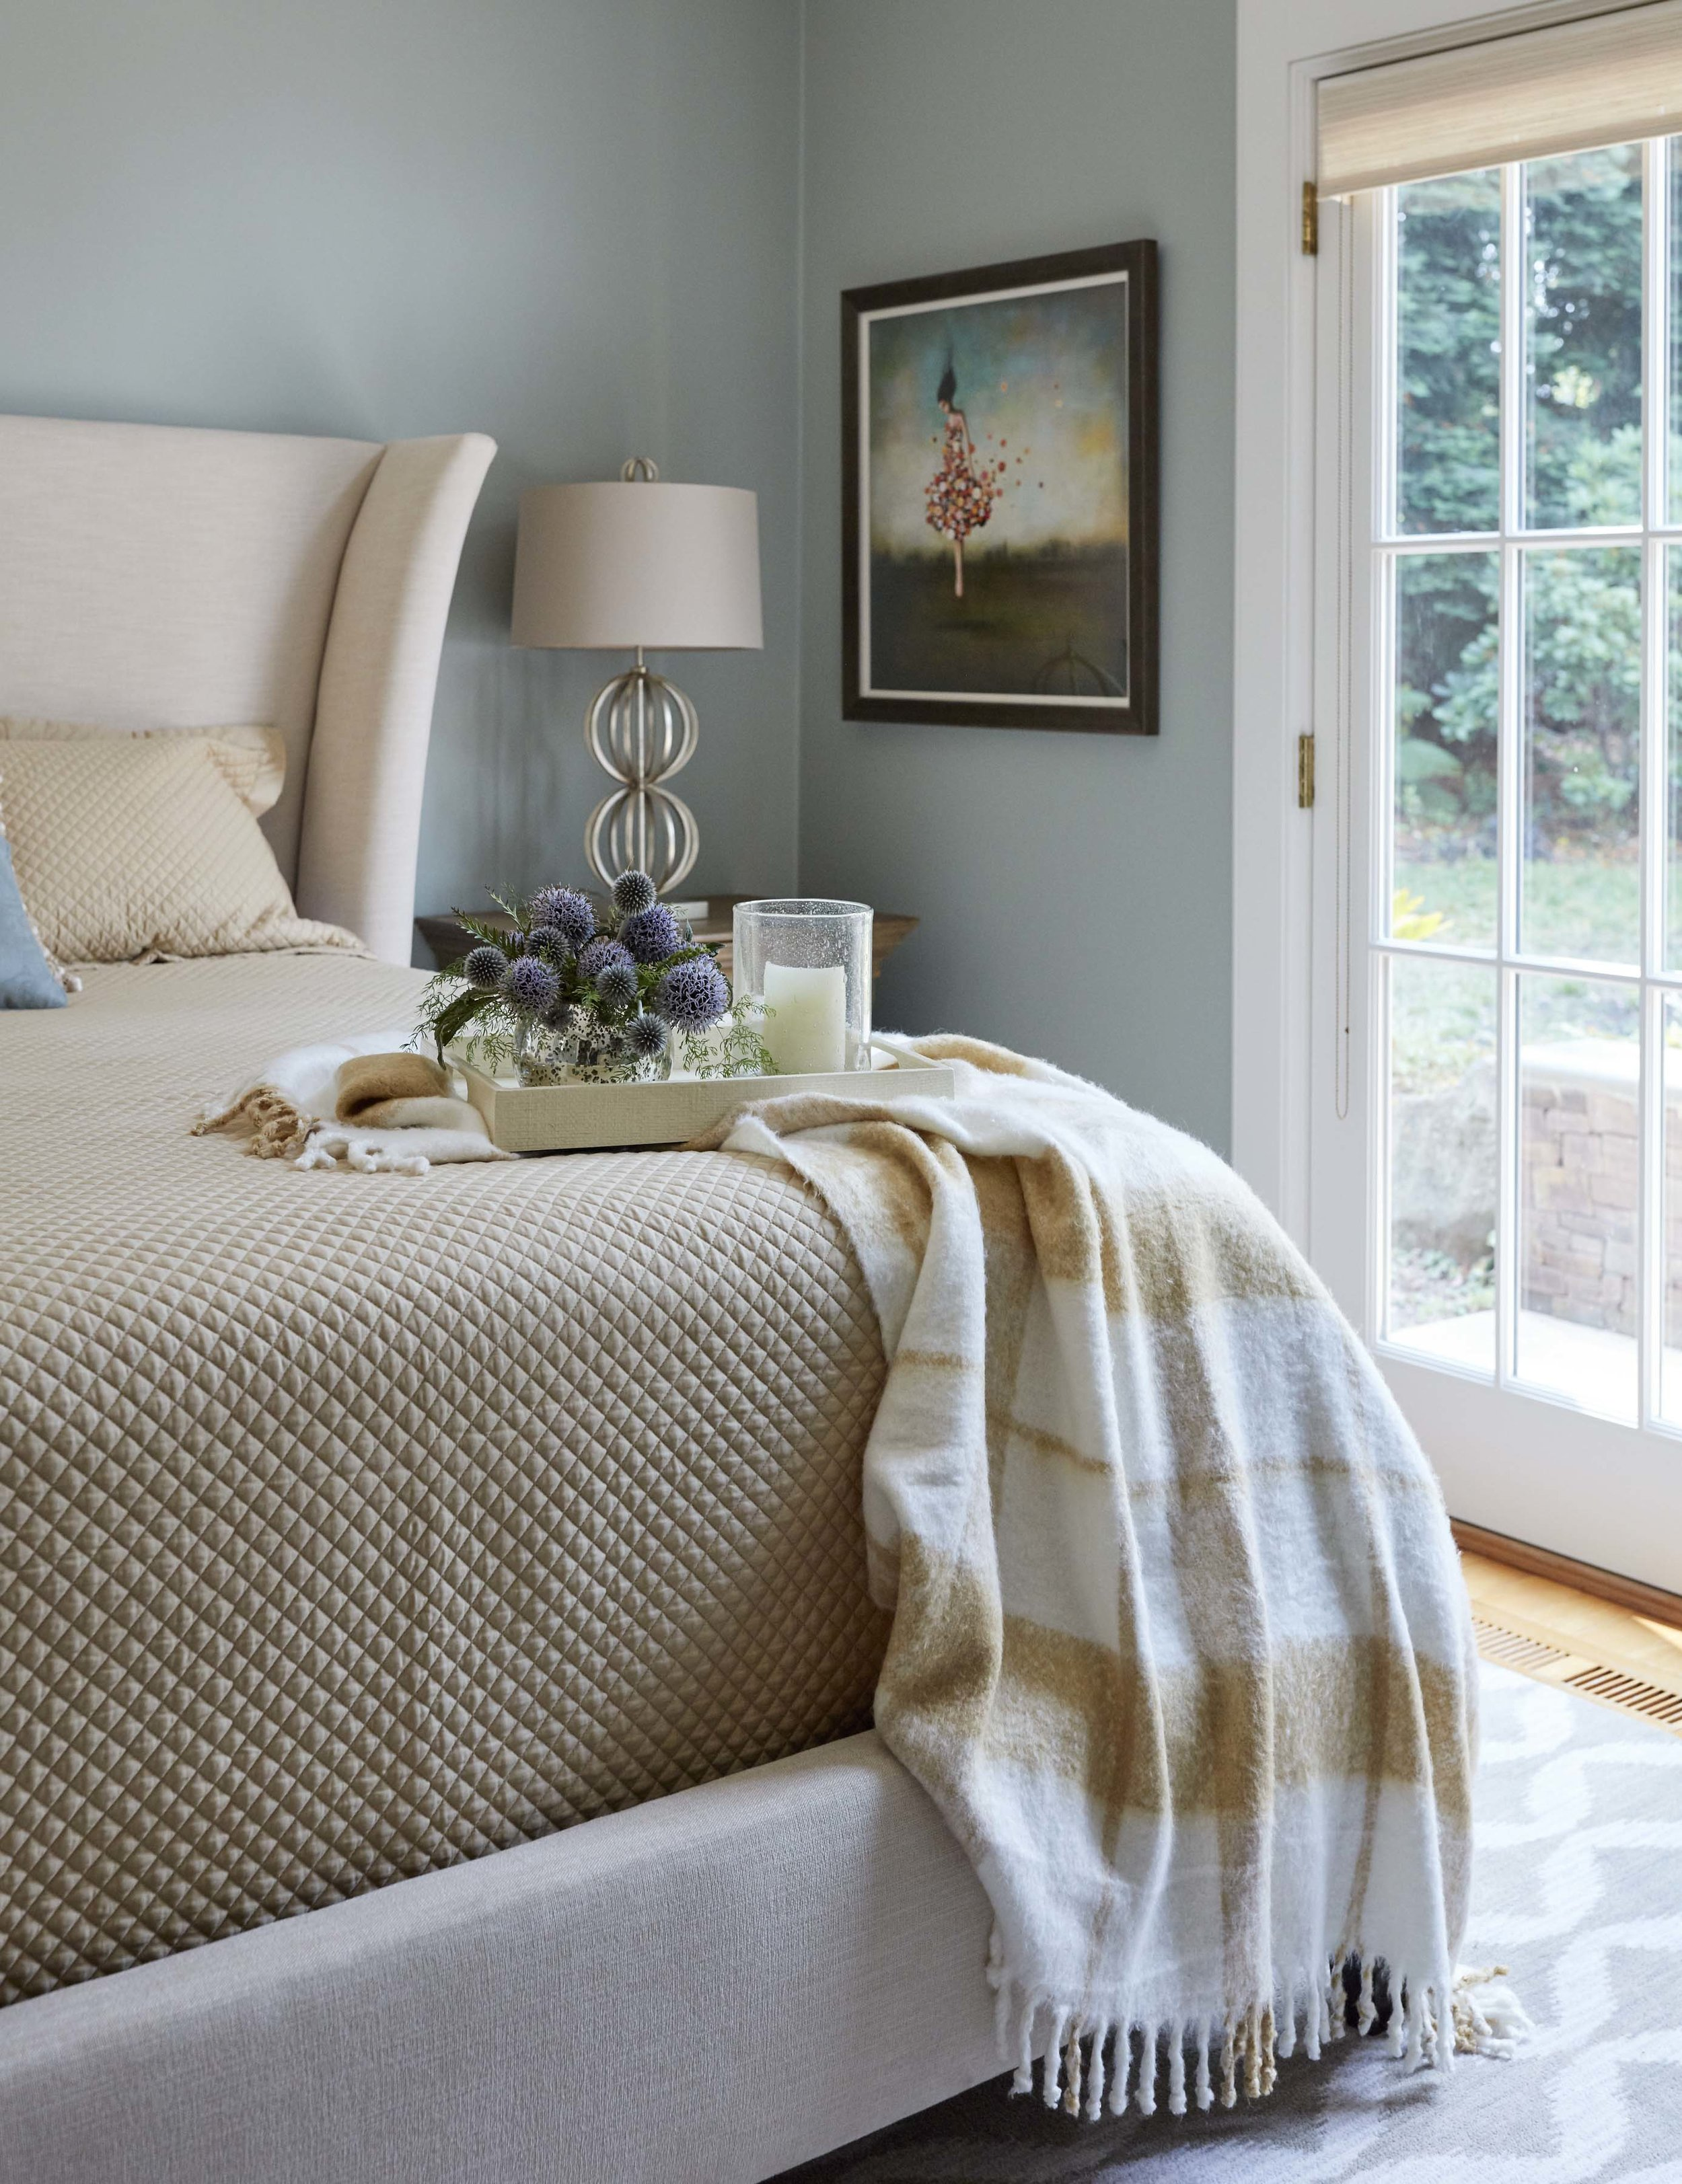 Blueish-green walls set the tone for this serene guest room.